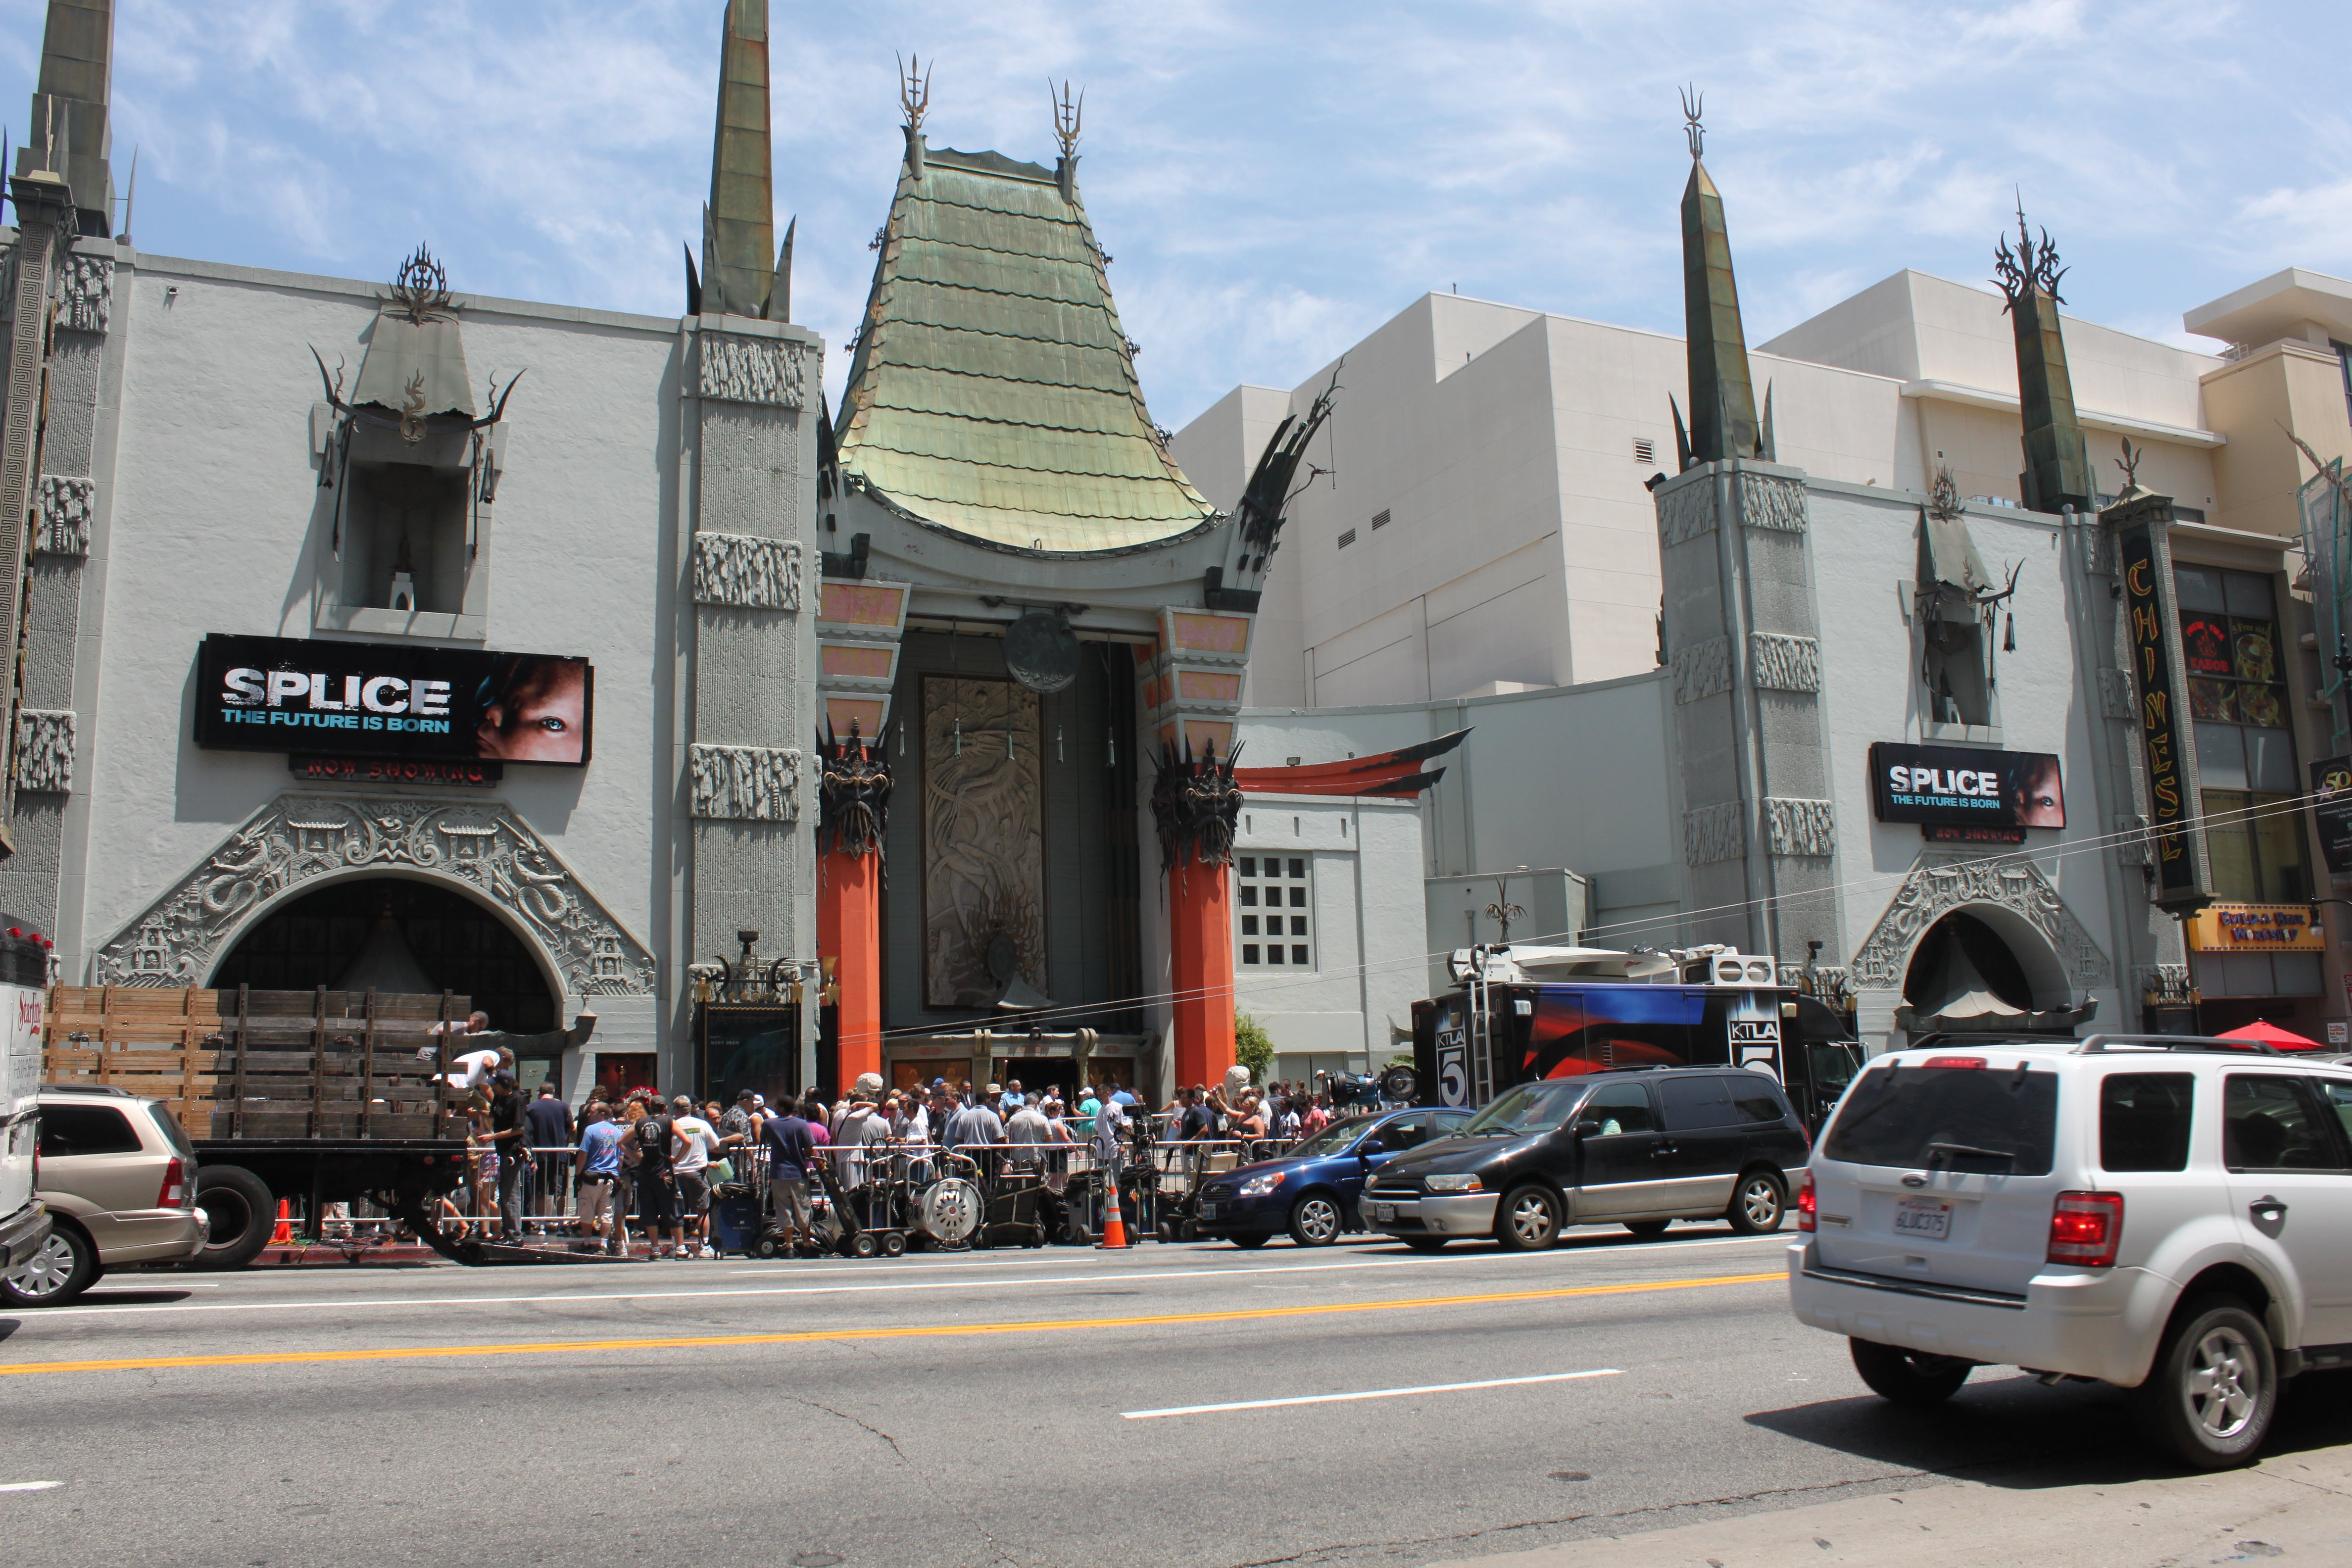 Calle en Grauman's Chinese Theatre